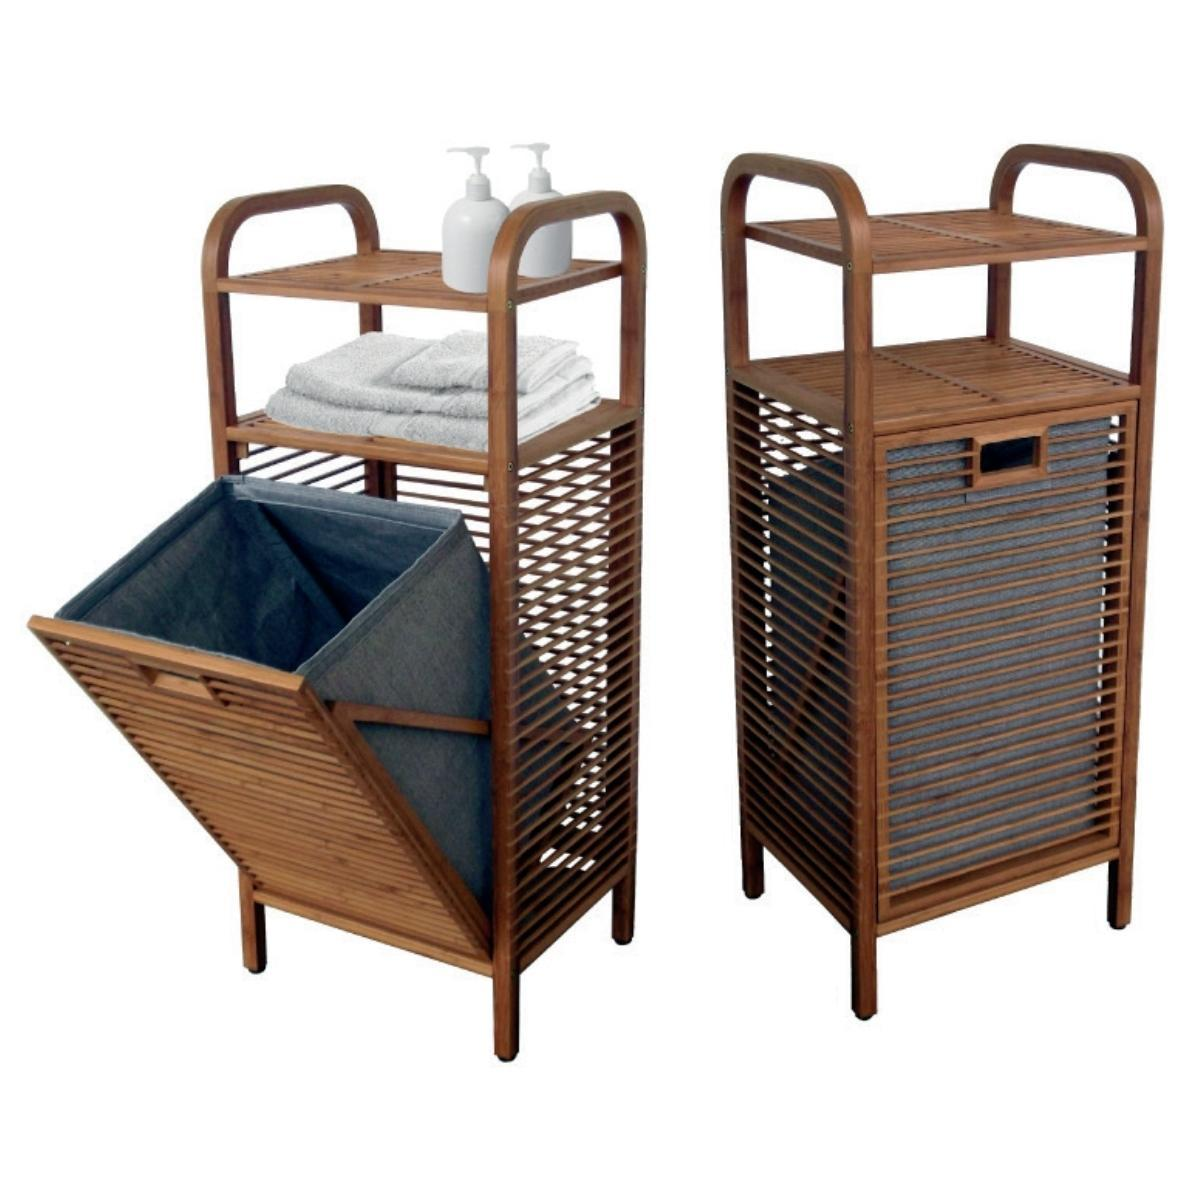 Laundry Basket With 2 Shelves With Bamboo Body 40 95 30 Cm